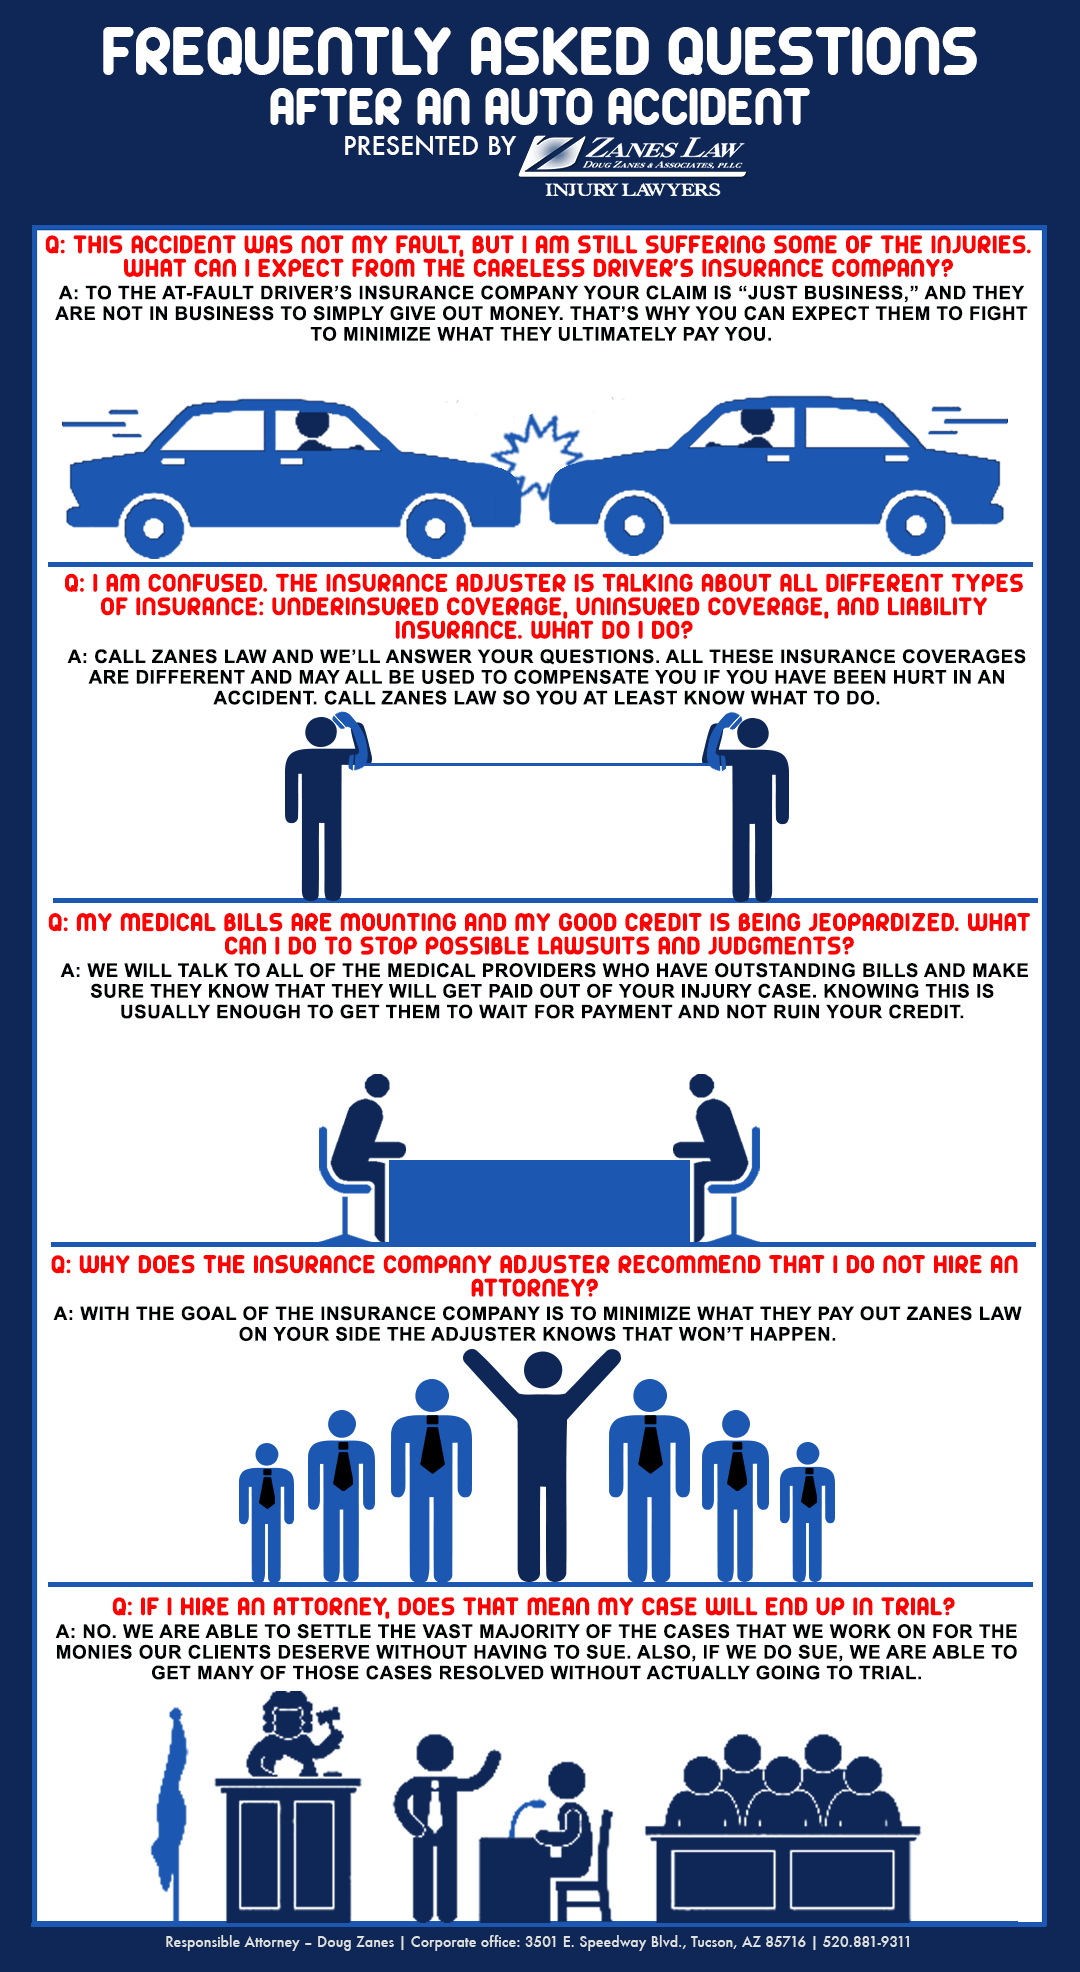 Frequently Asked Questions After An Auto Accident